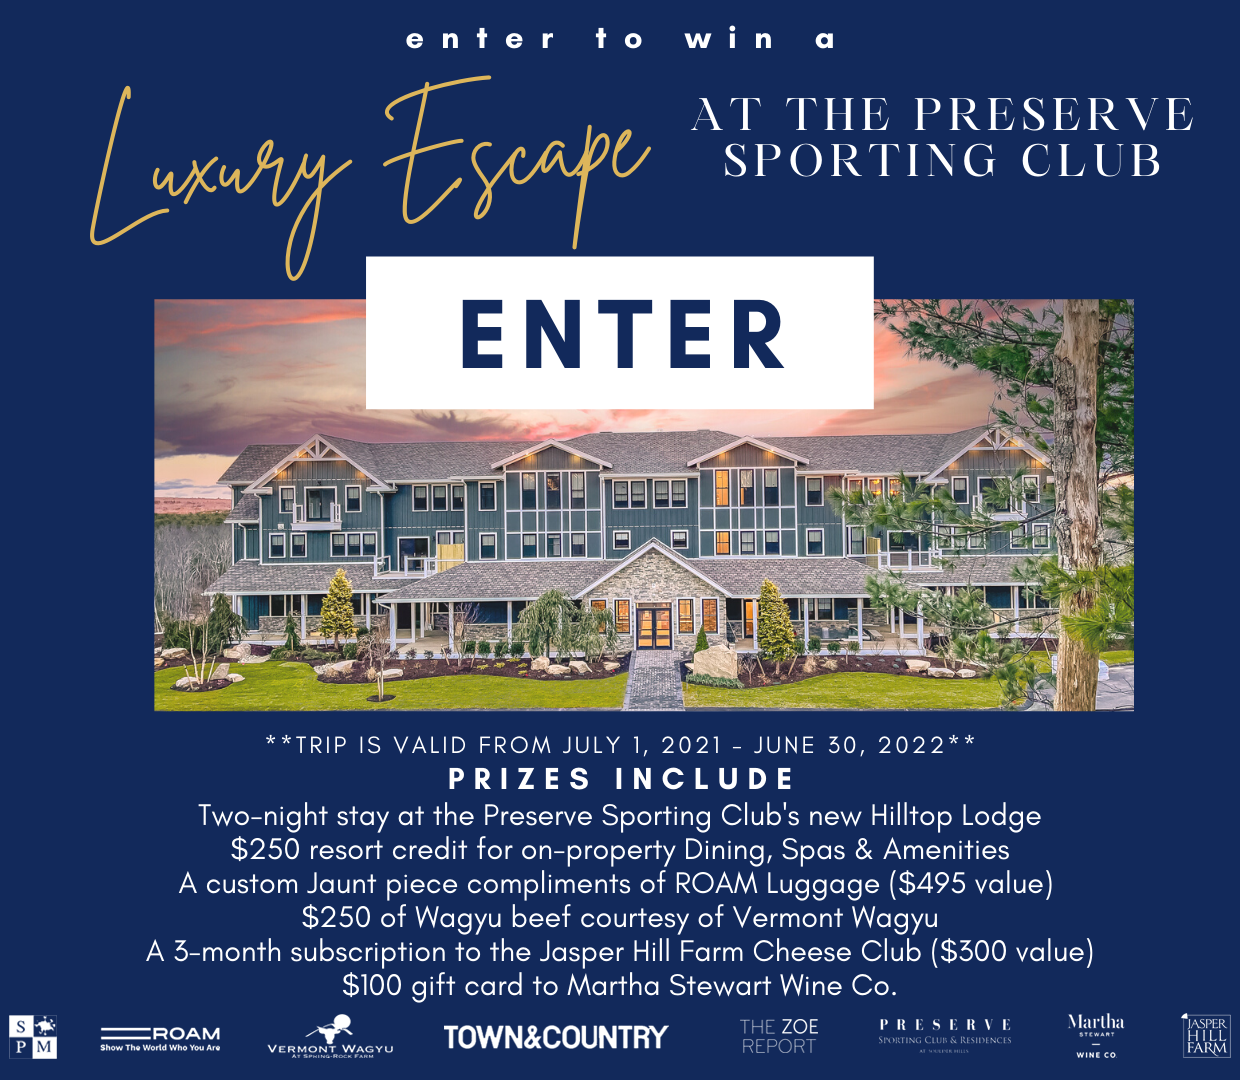 Enter now for a chance to win: A two-night stay at the Preserve Sporting Club's new Hilltop Lodge, featuring 25 luxurious and spacious suites. Also included: A $250 resort credit for use in on-property dining outlets, spa experiences, on-property amenities and amenities including clay shooting, fishing, golfing, tennis and more; A custom Jaunt piece compliments of ROAM Luggage ($495 value); $250 of Wagyu beef courtesy of Vermont Wagyu; 3-month subscription to the Jasper Hill Farm Cheese Club ($300 value), and $100 gift card to Martha Stewart Wine Co.